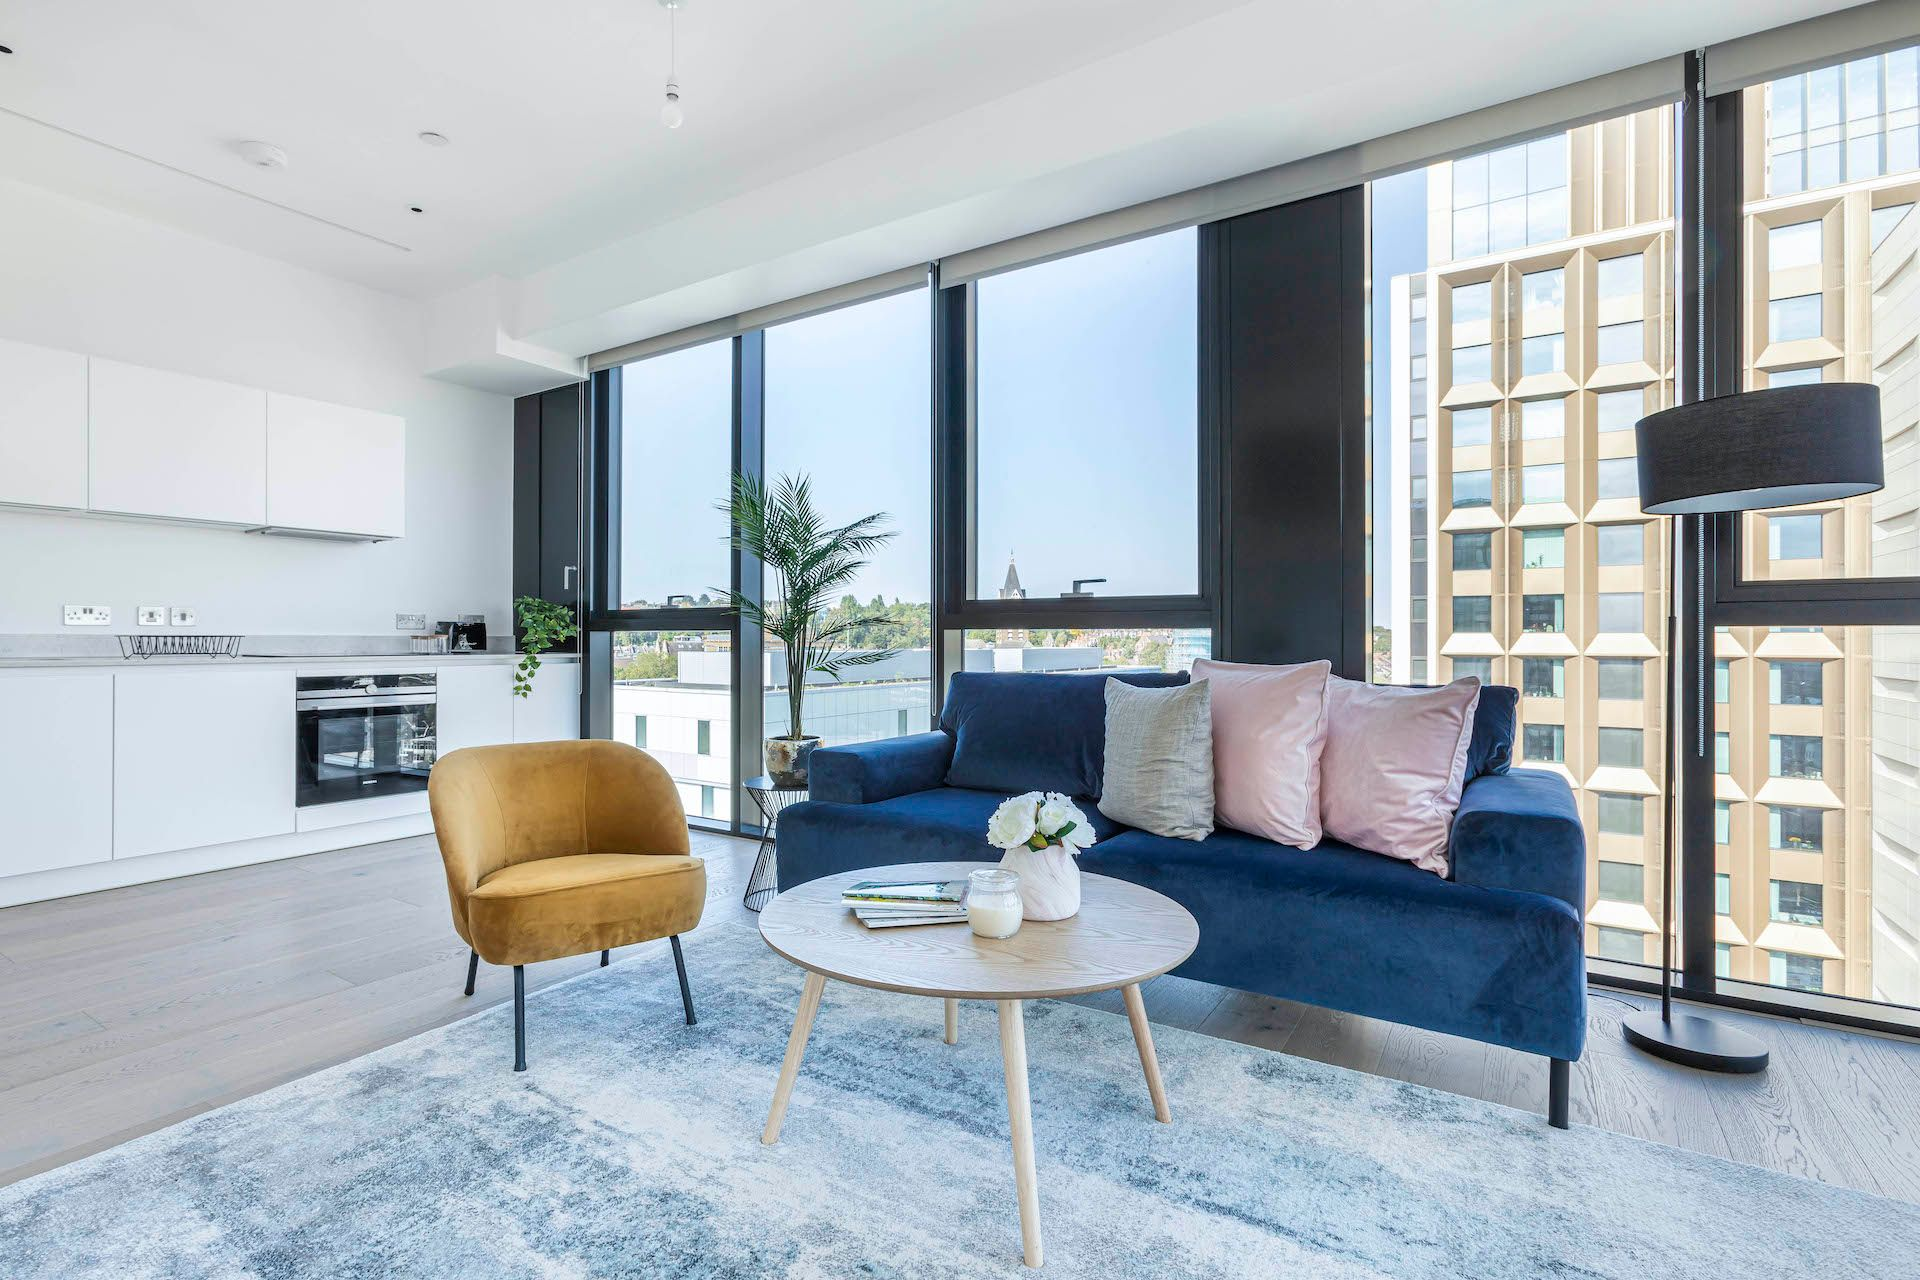 1 Bedroom apartment to rent in London HIL-HH-1108